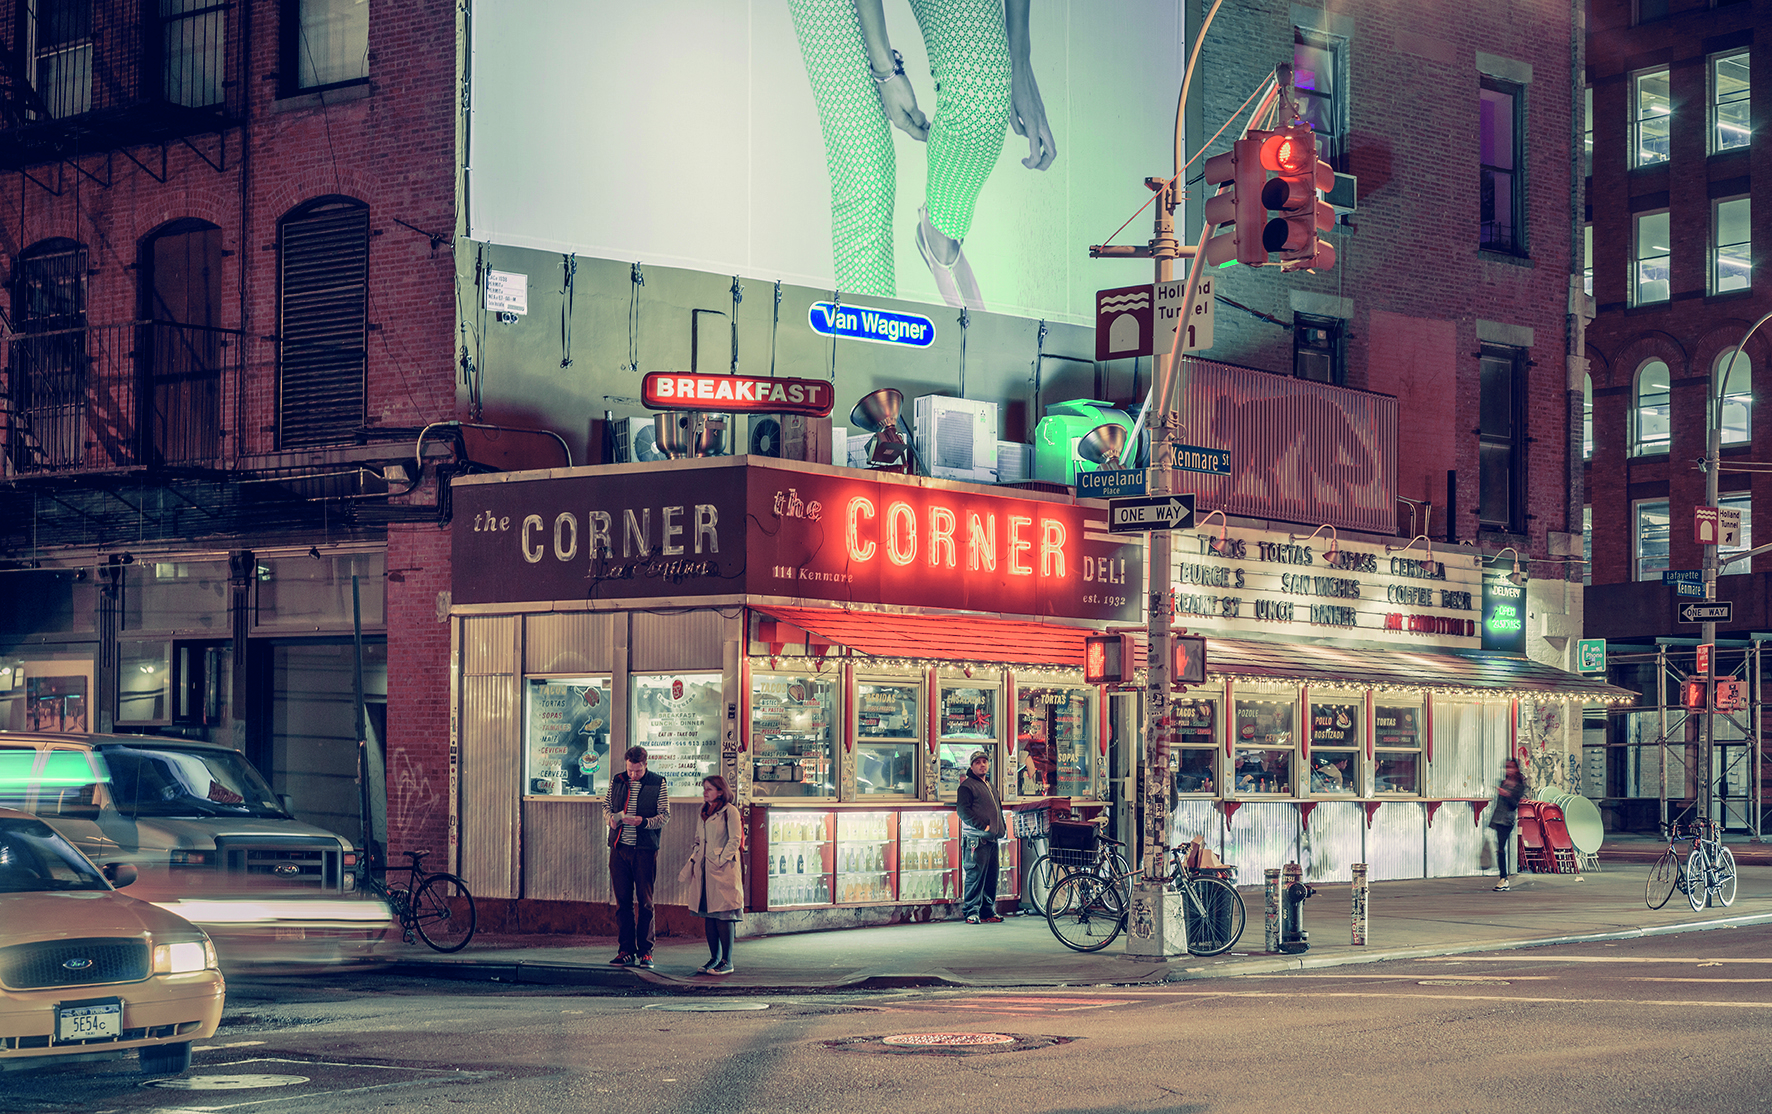 © Light On New City by Franck Bohbot, published by teNeues and YellowKorner, www.teneues.com, www.yellowkorner.com. The Corner Deli / La Esquina, Nolita, Manhattan, 2014, Photo © 2016 Franck Bohbot/INSTITUTE. All rights reserved. www.instituteartist.com